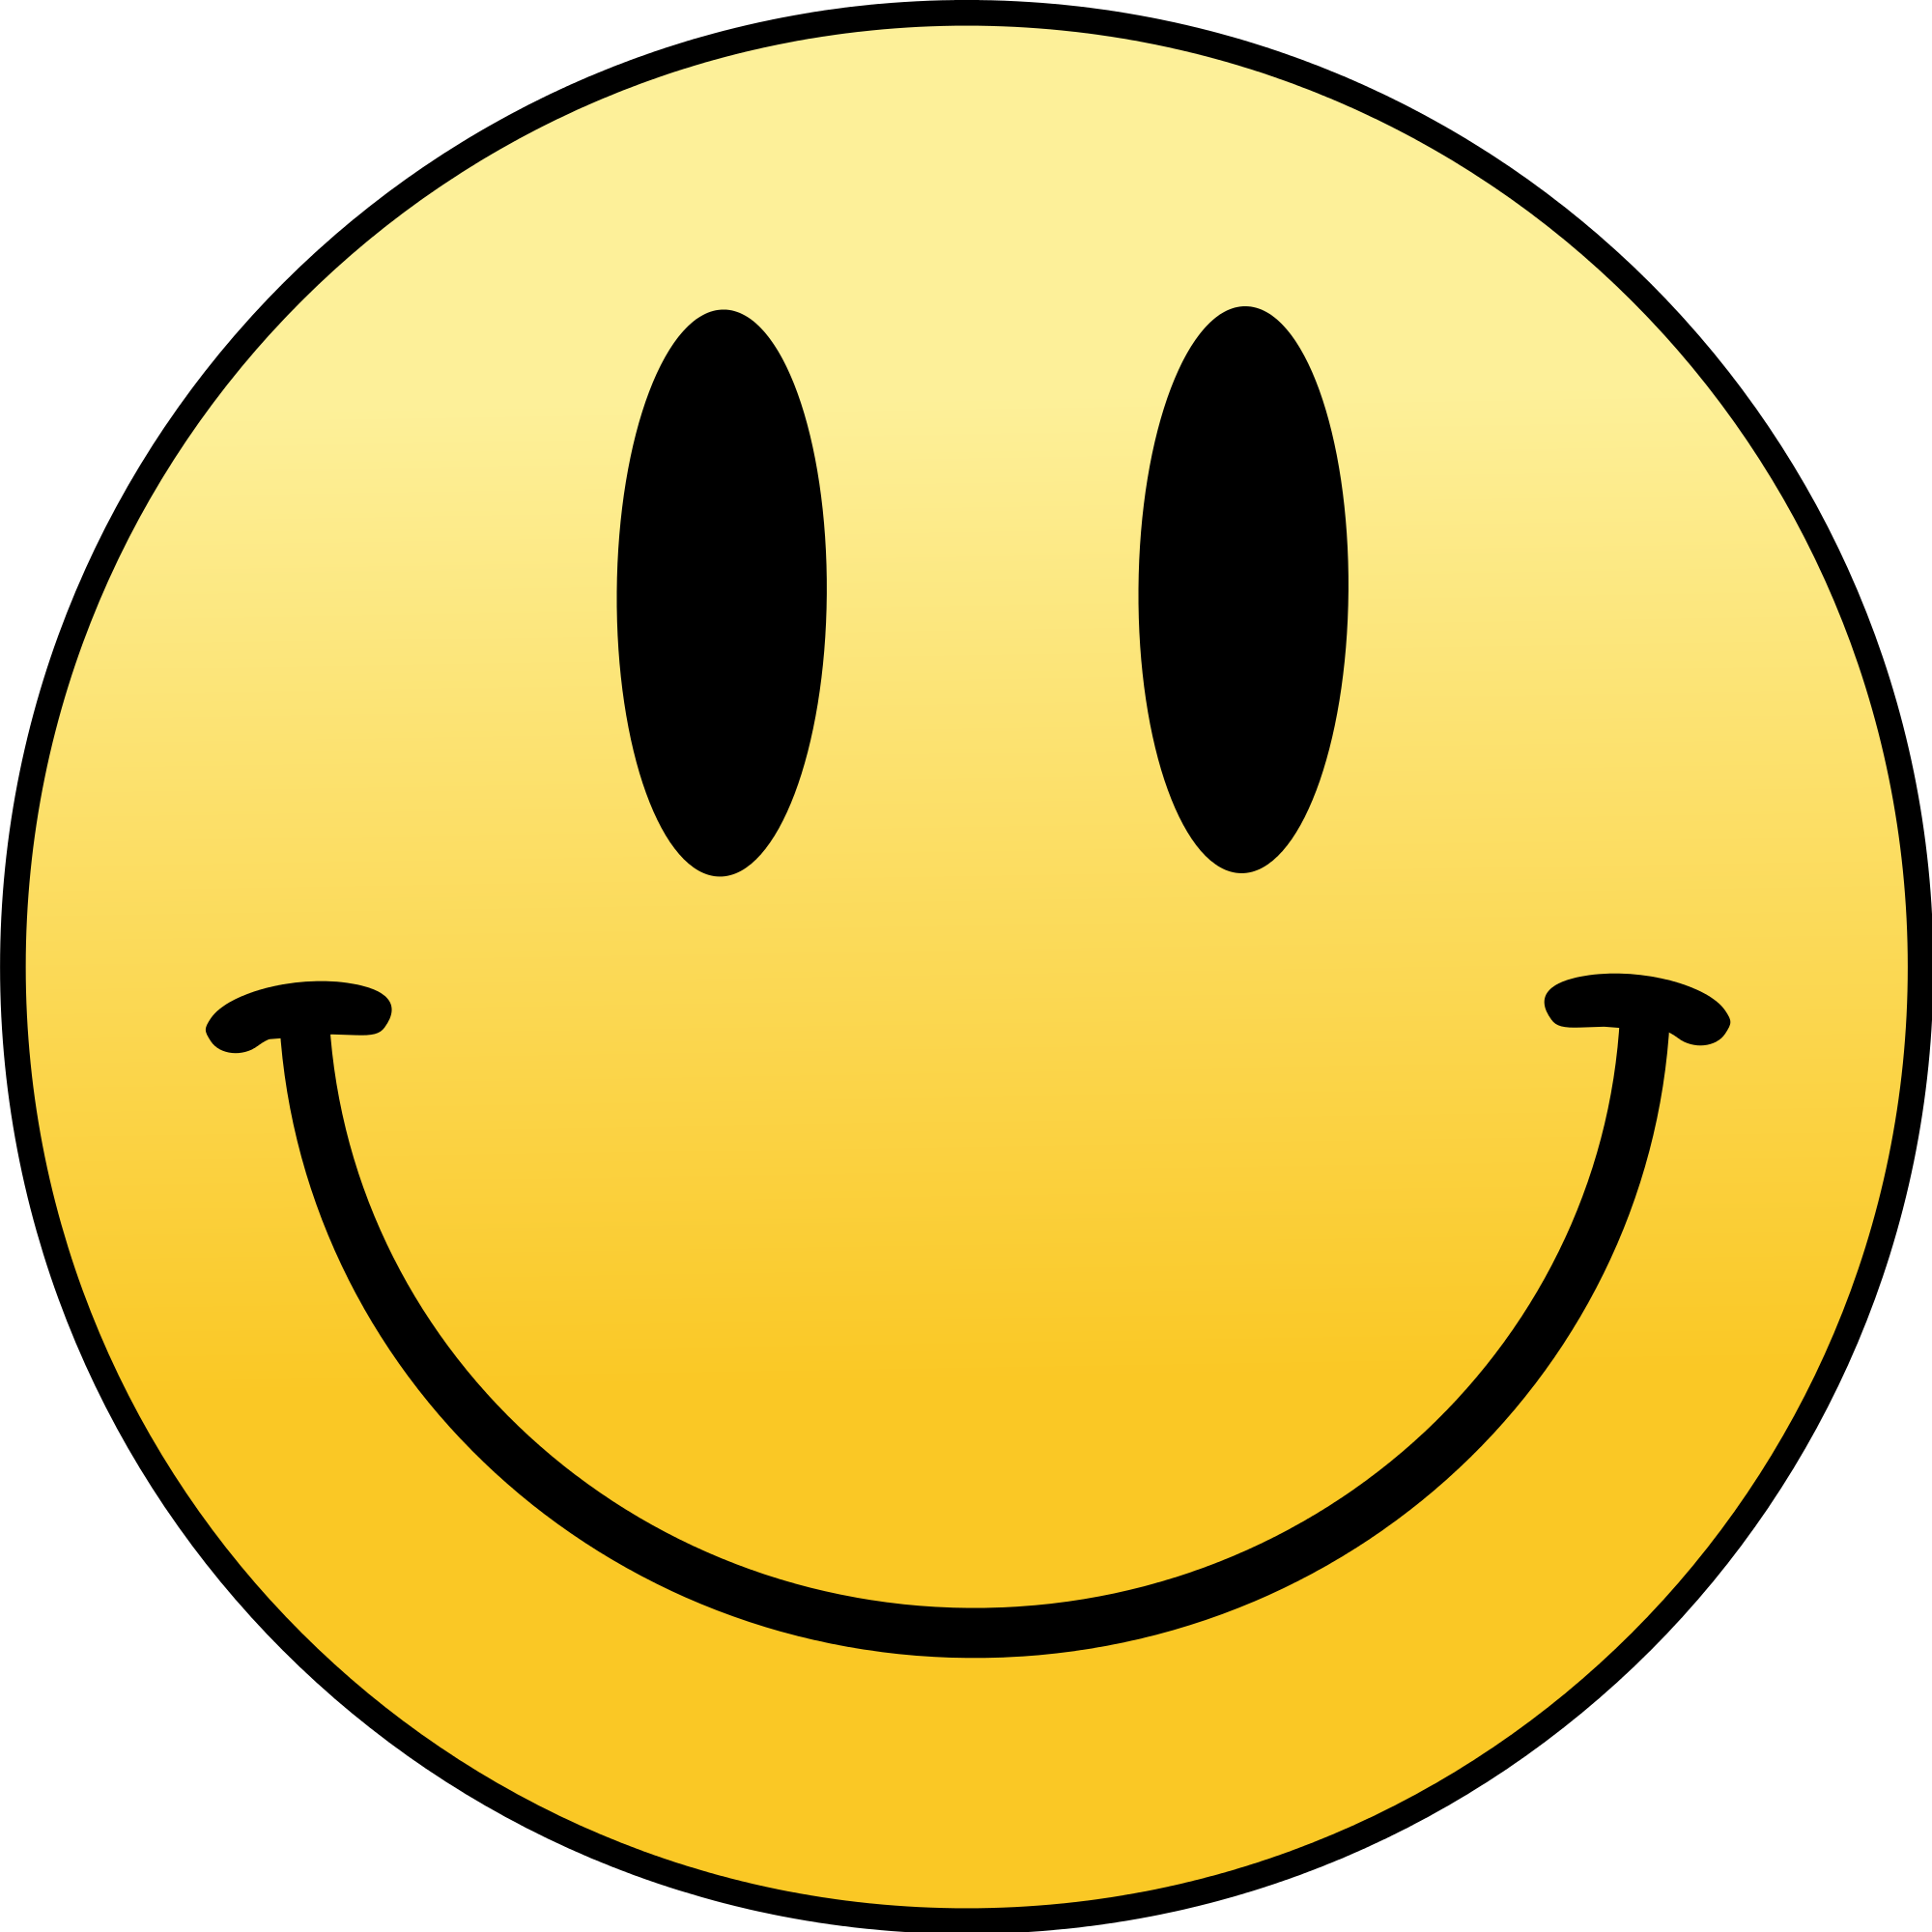 File:Mr. Smiley Face.svg - Wikimedia Commons